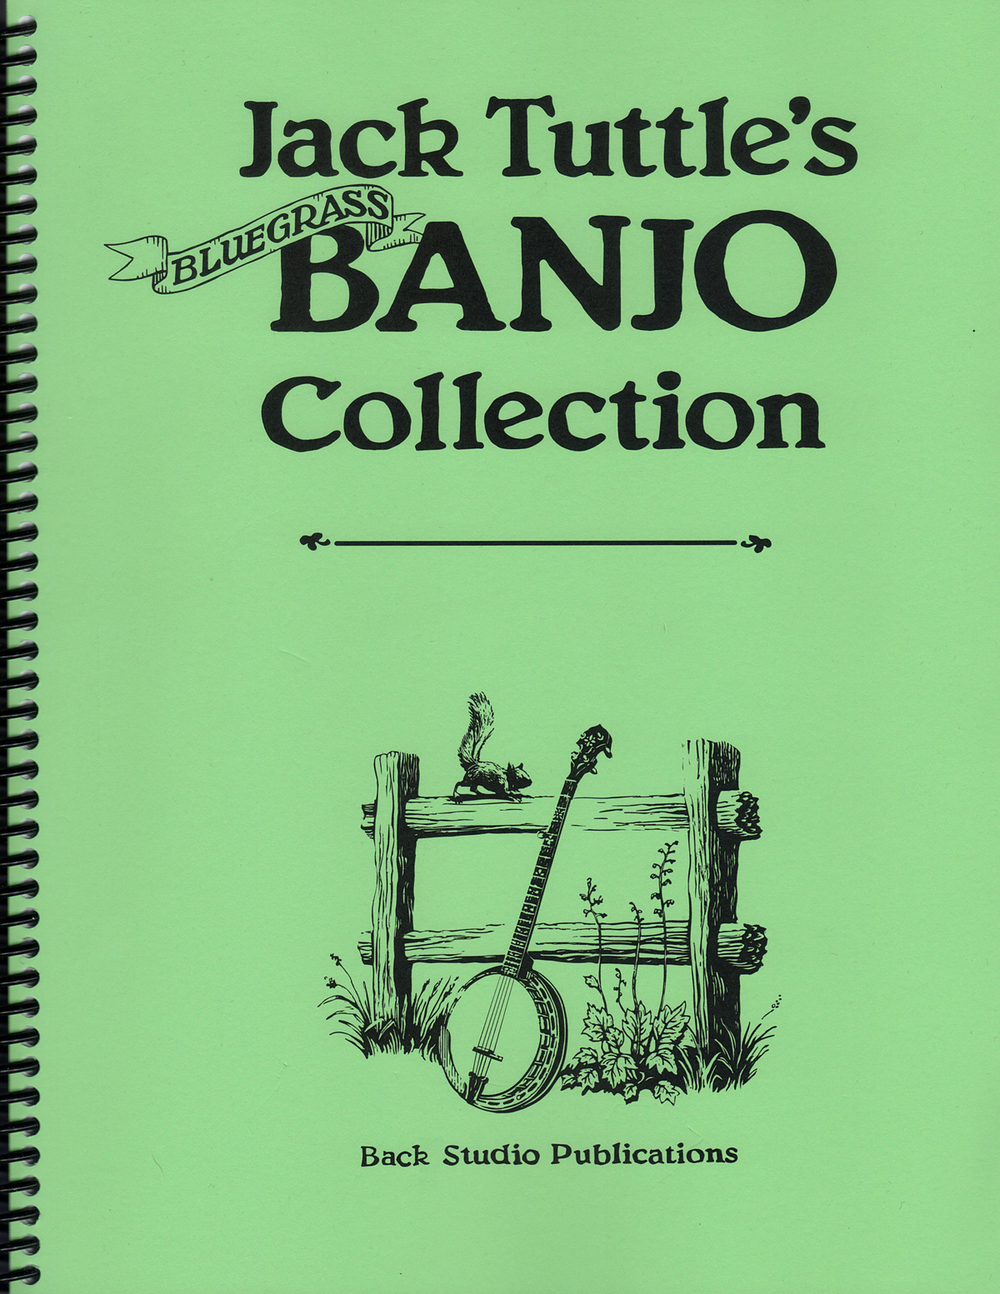 Jack Tuttle's Bluegrass Banjo Collection, Vol. 2